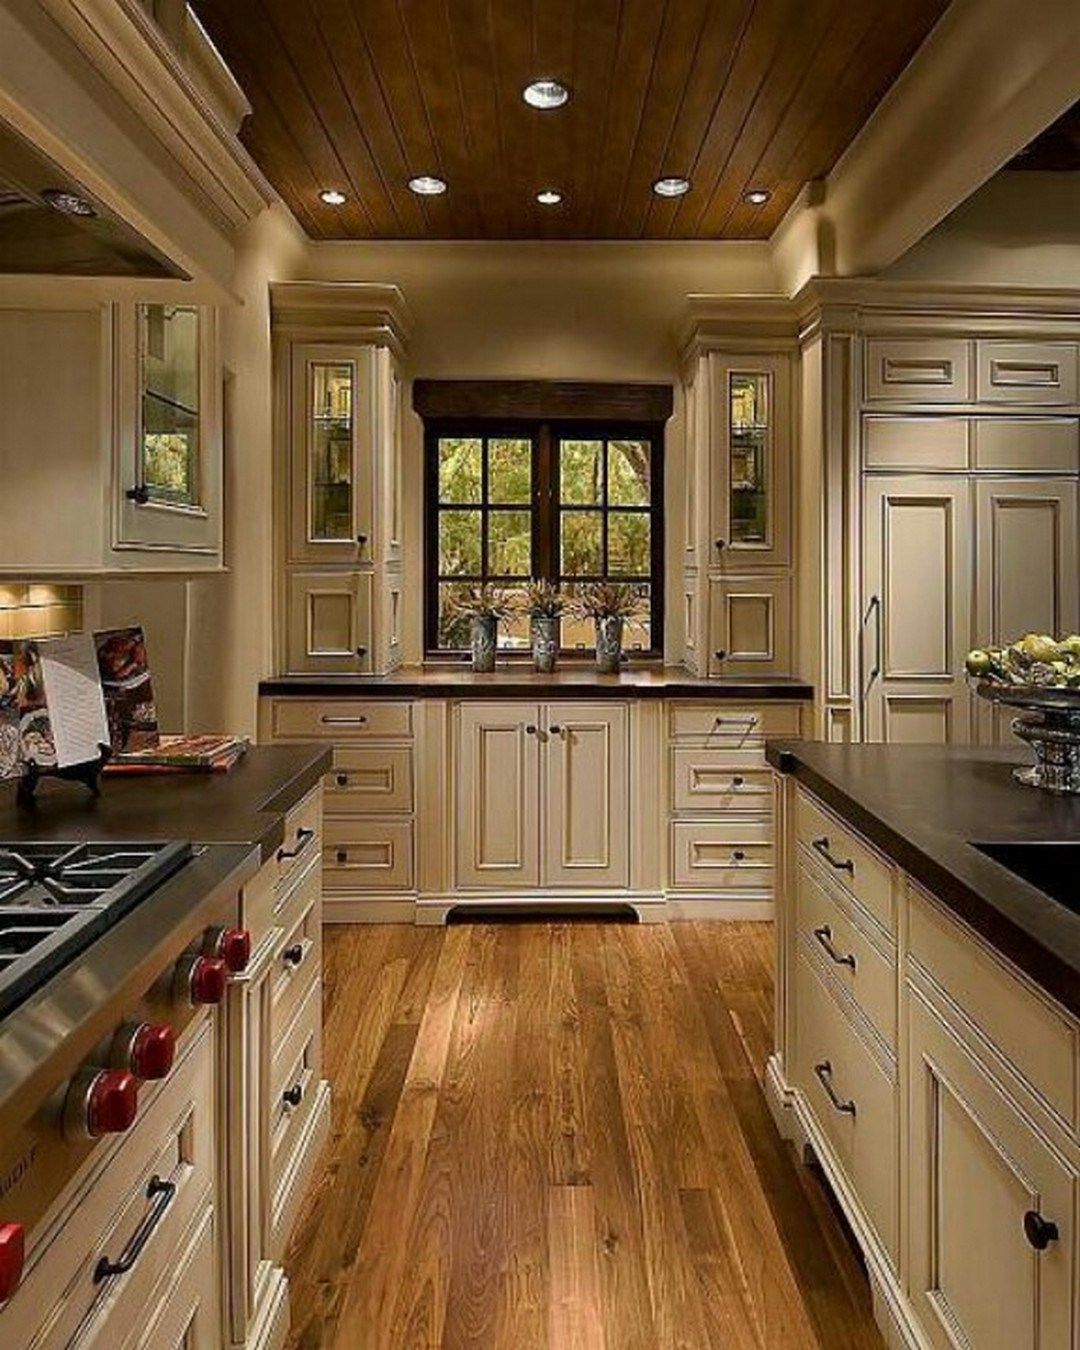 99 French Country Kitchen Modern Design Ideas (37) | Ideas for the ...